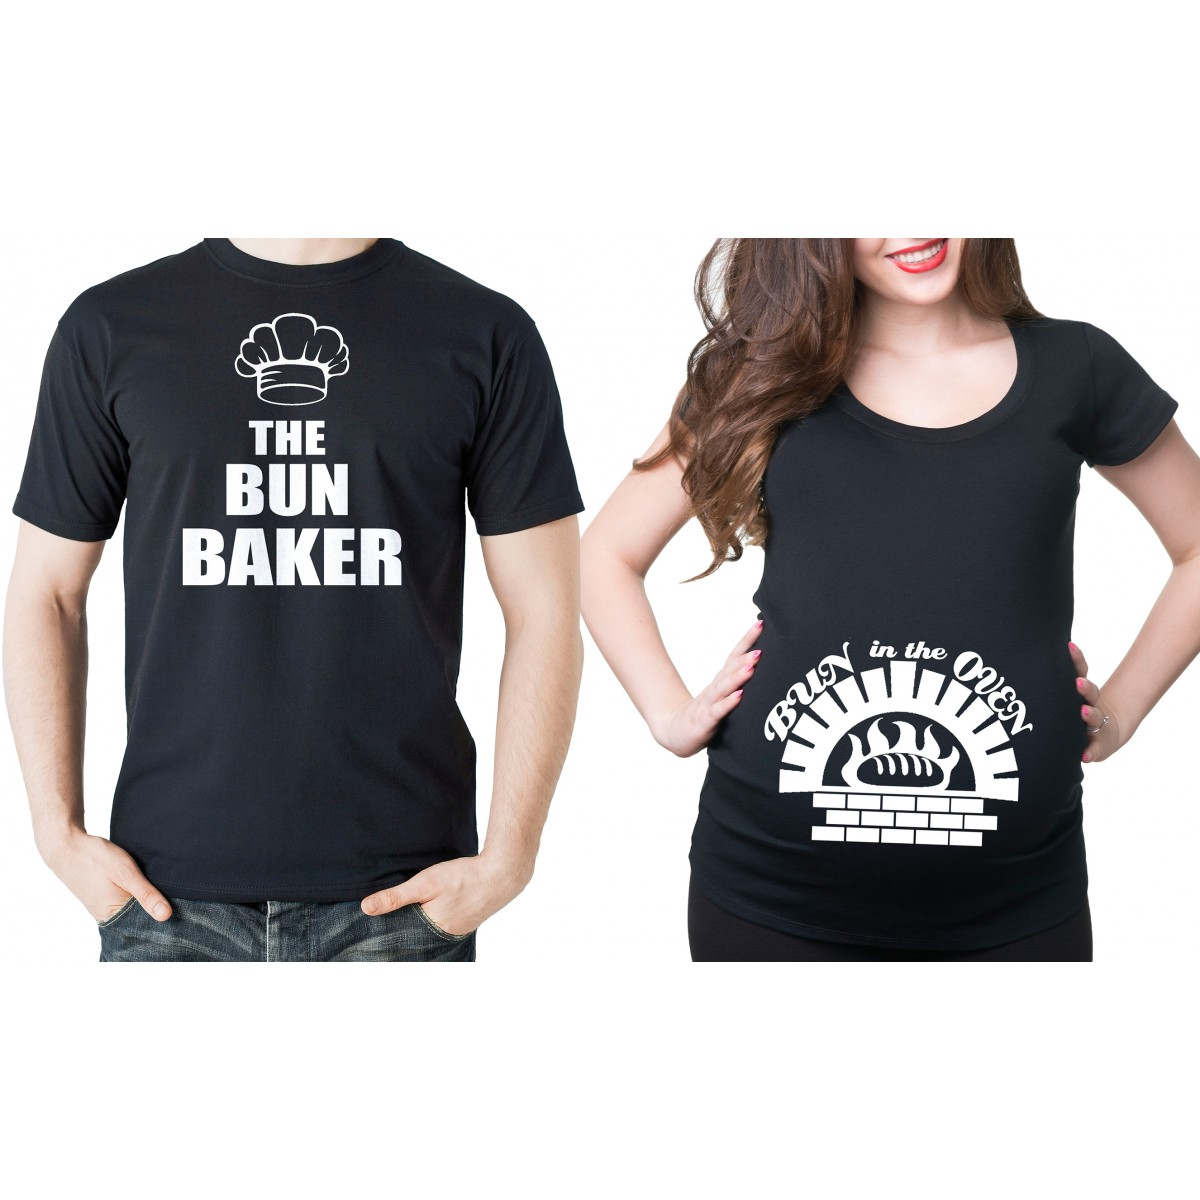 pregnancy t shirts couple maternity t-shirts bun in the oven pregnancy t-shirt bun baker dad  maternity IVWGKUU